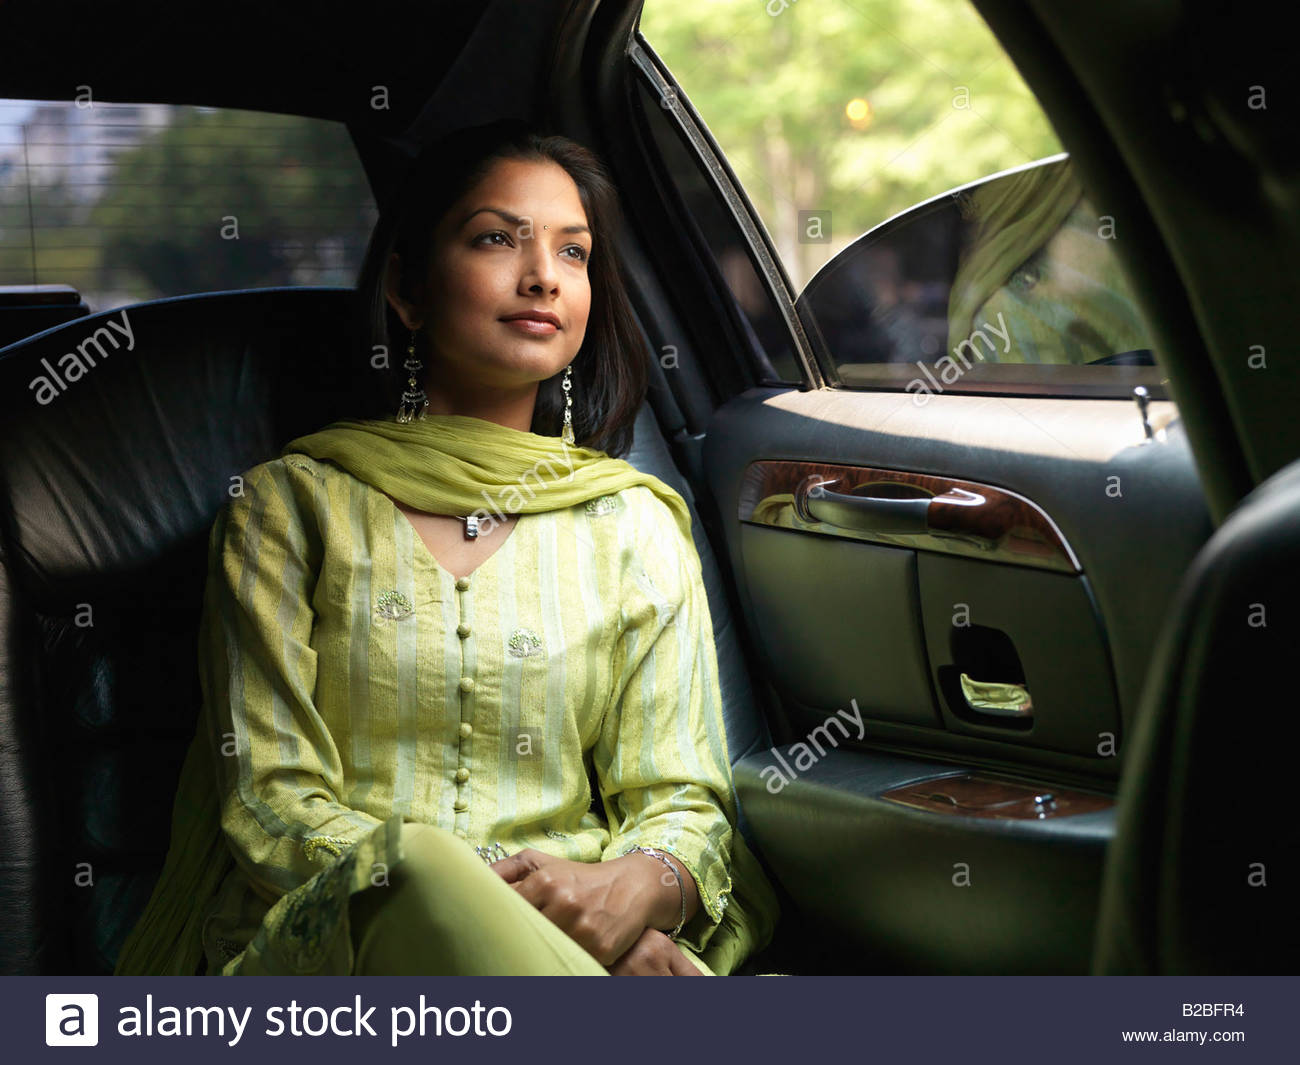 Indian woman in backseat of car - Stock Image